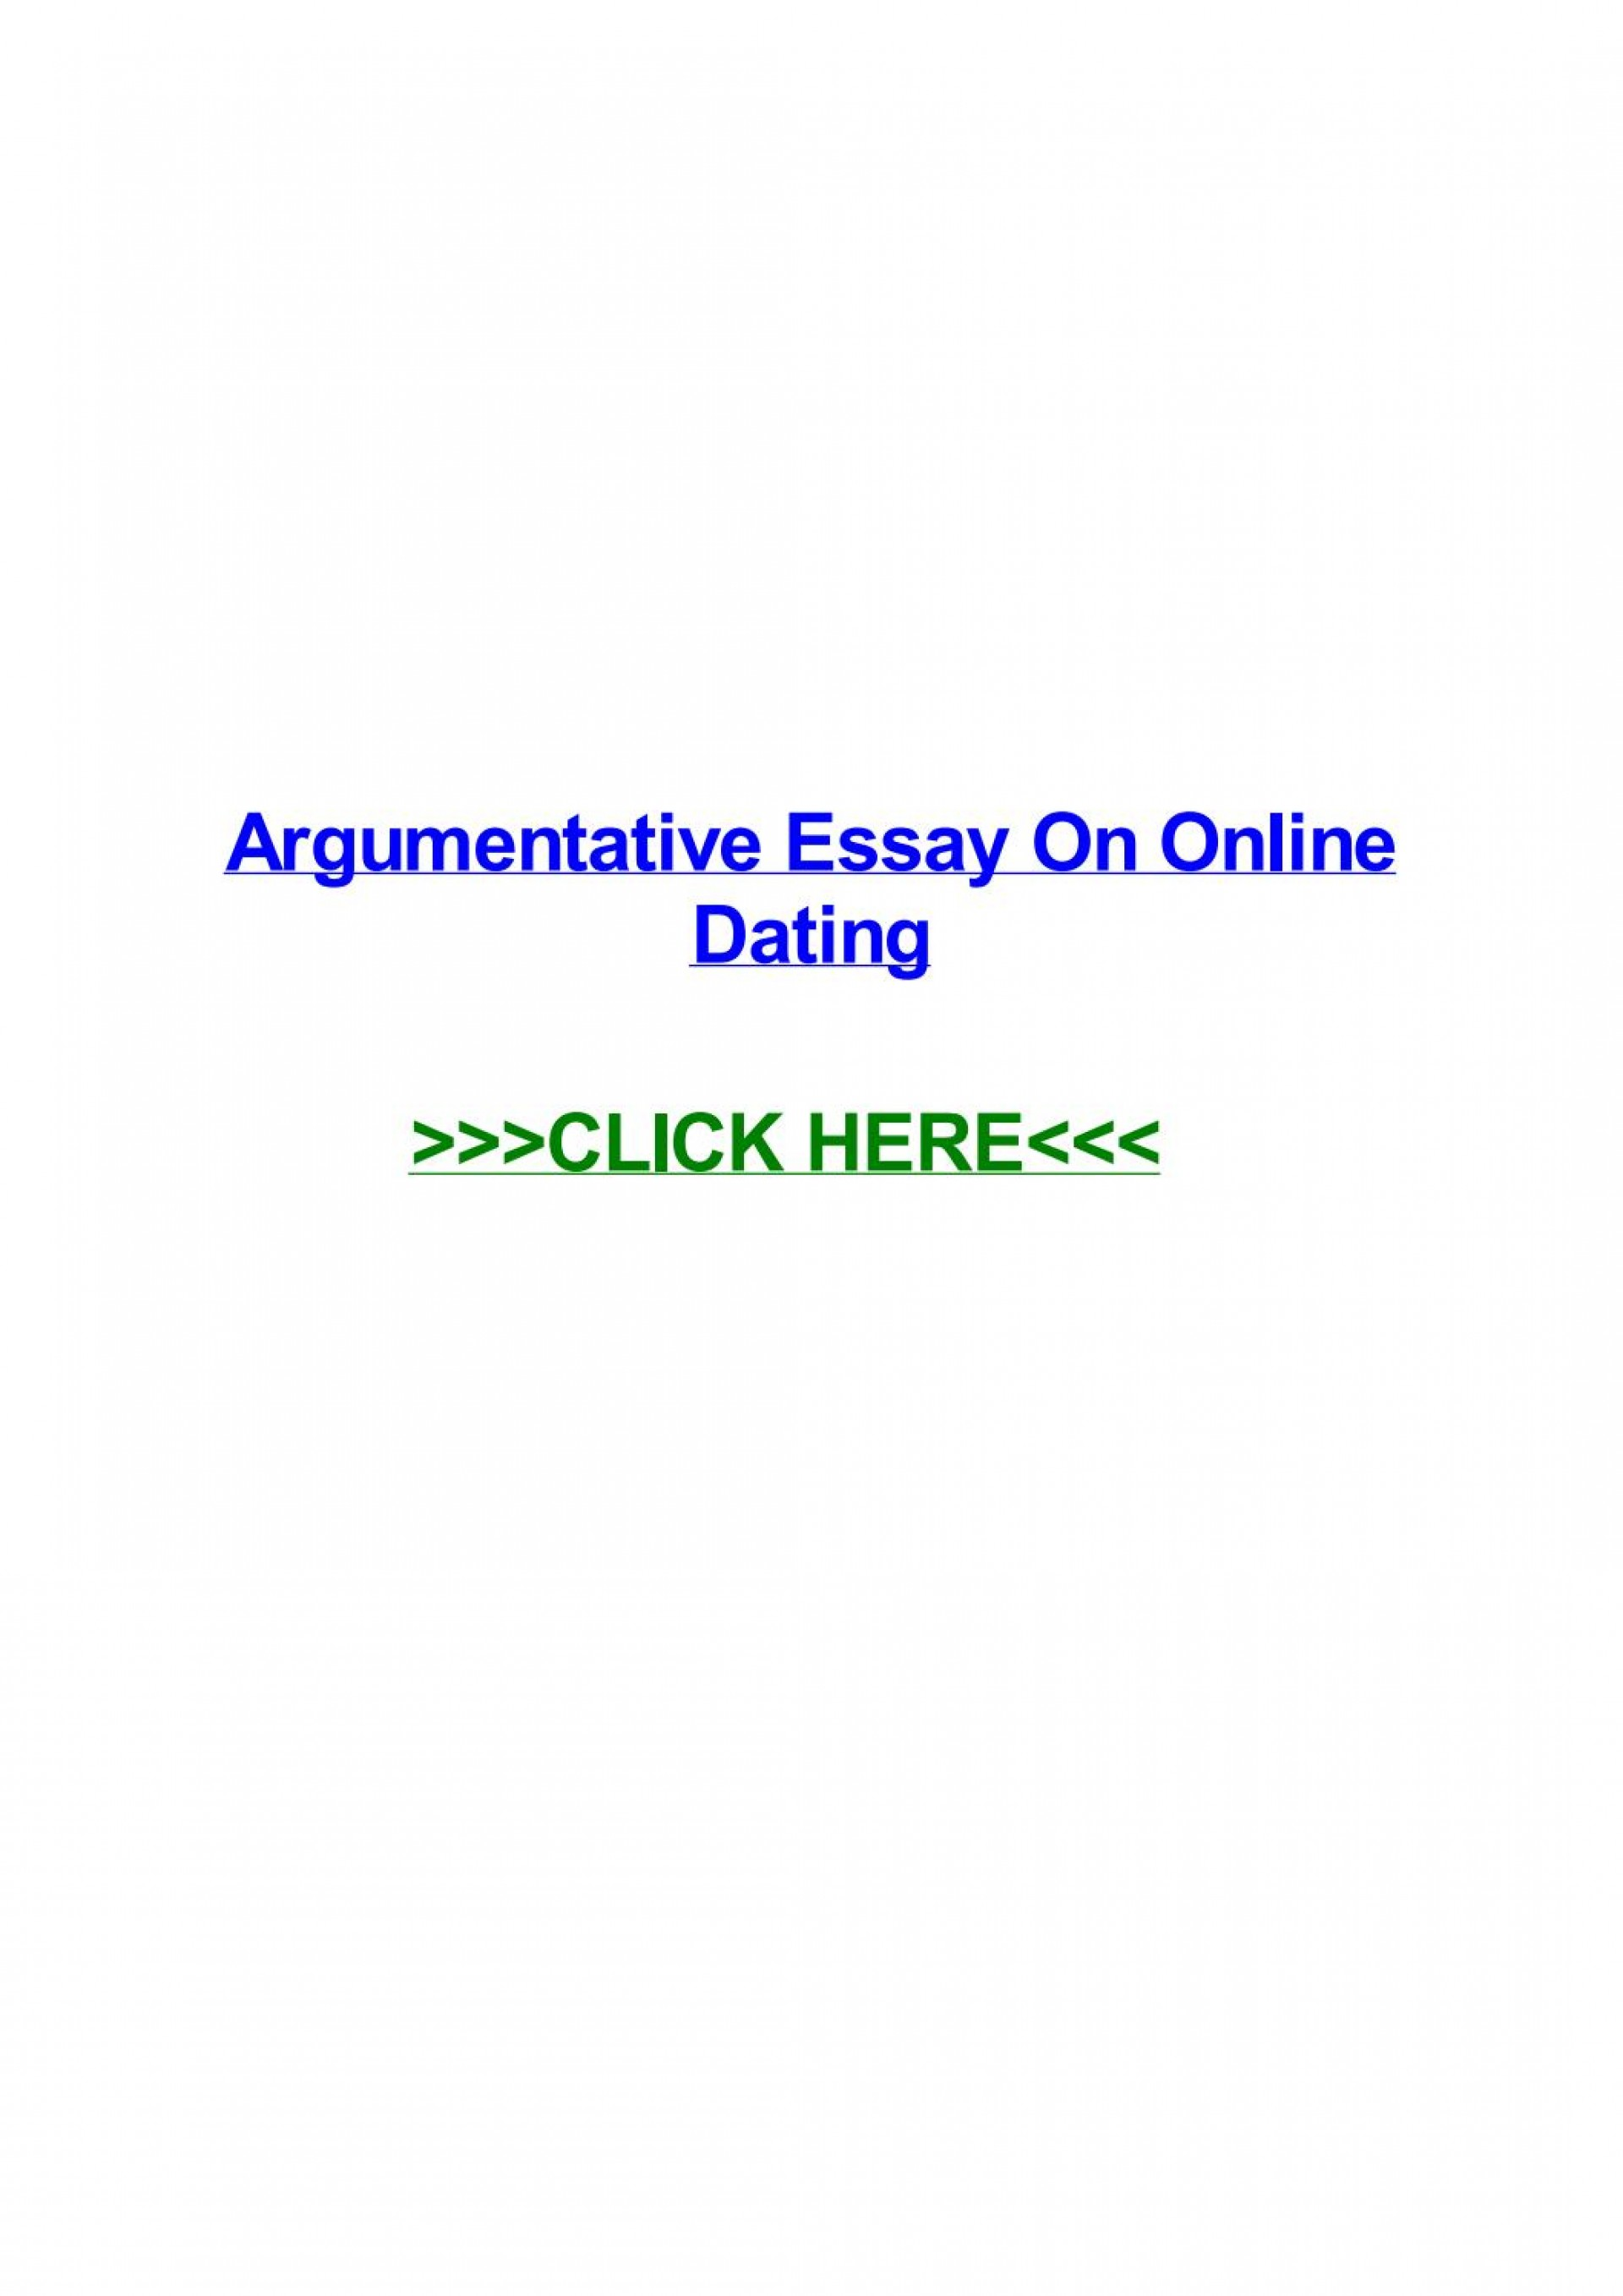 023 Argumentative Research Paper On Online Dating Page 1 Impressive Essay 1920